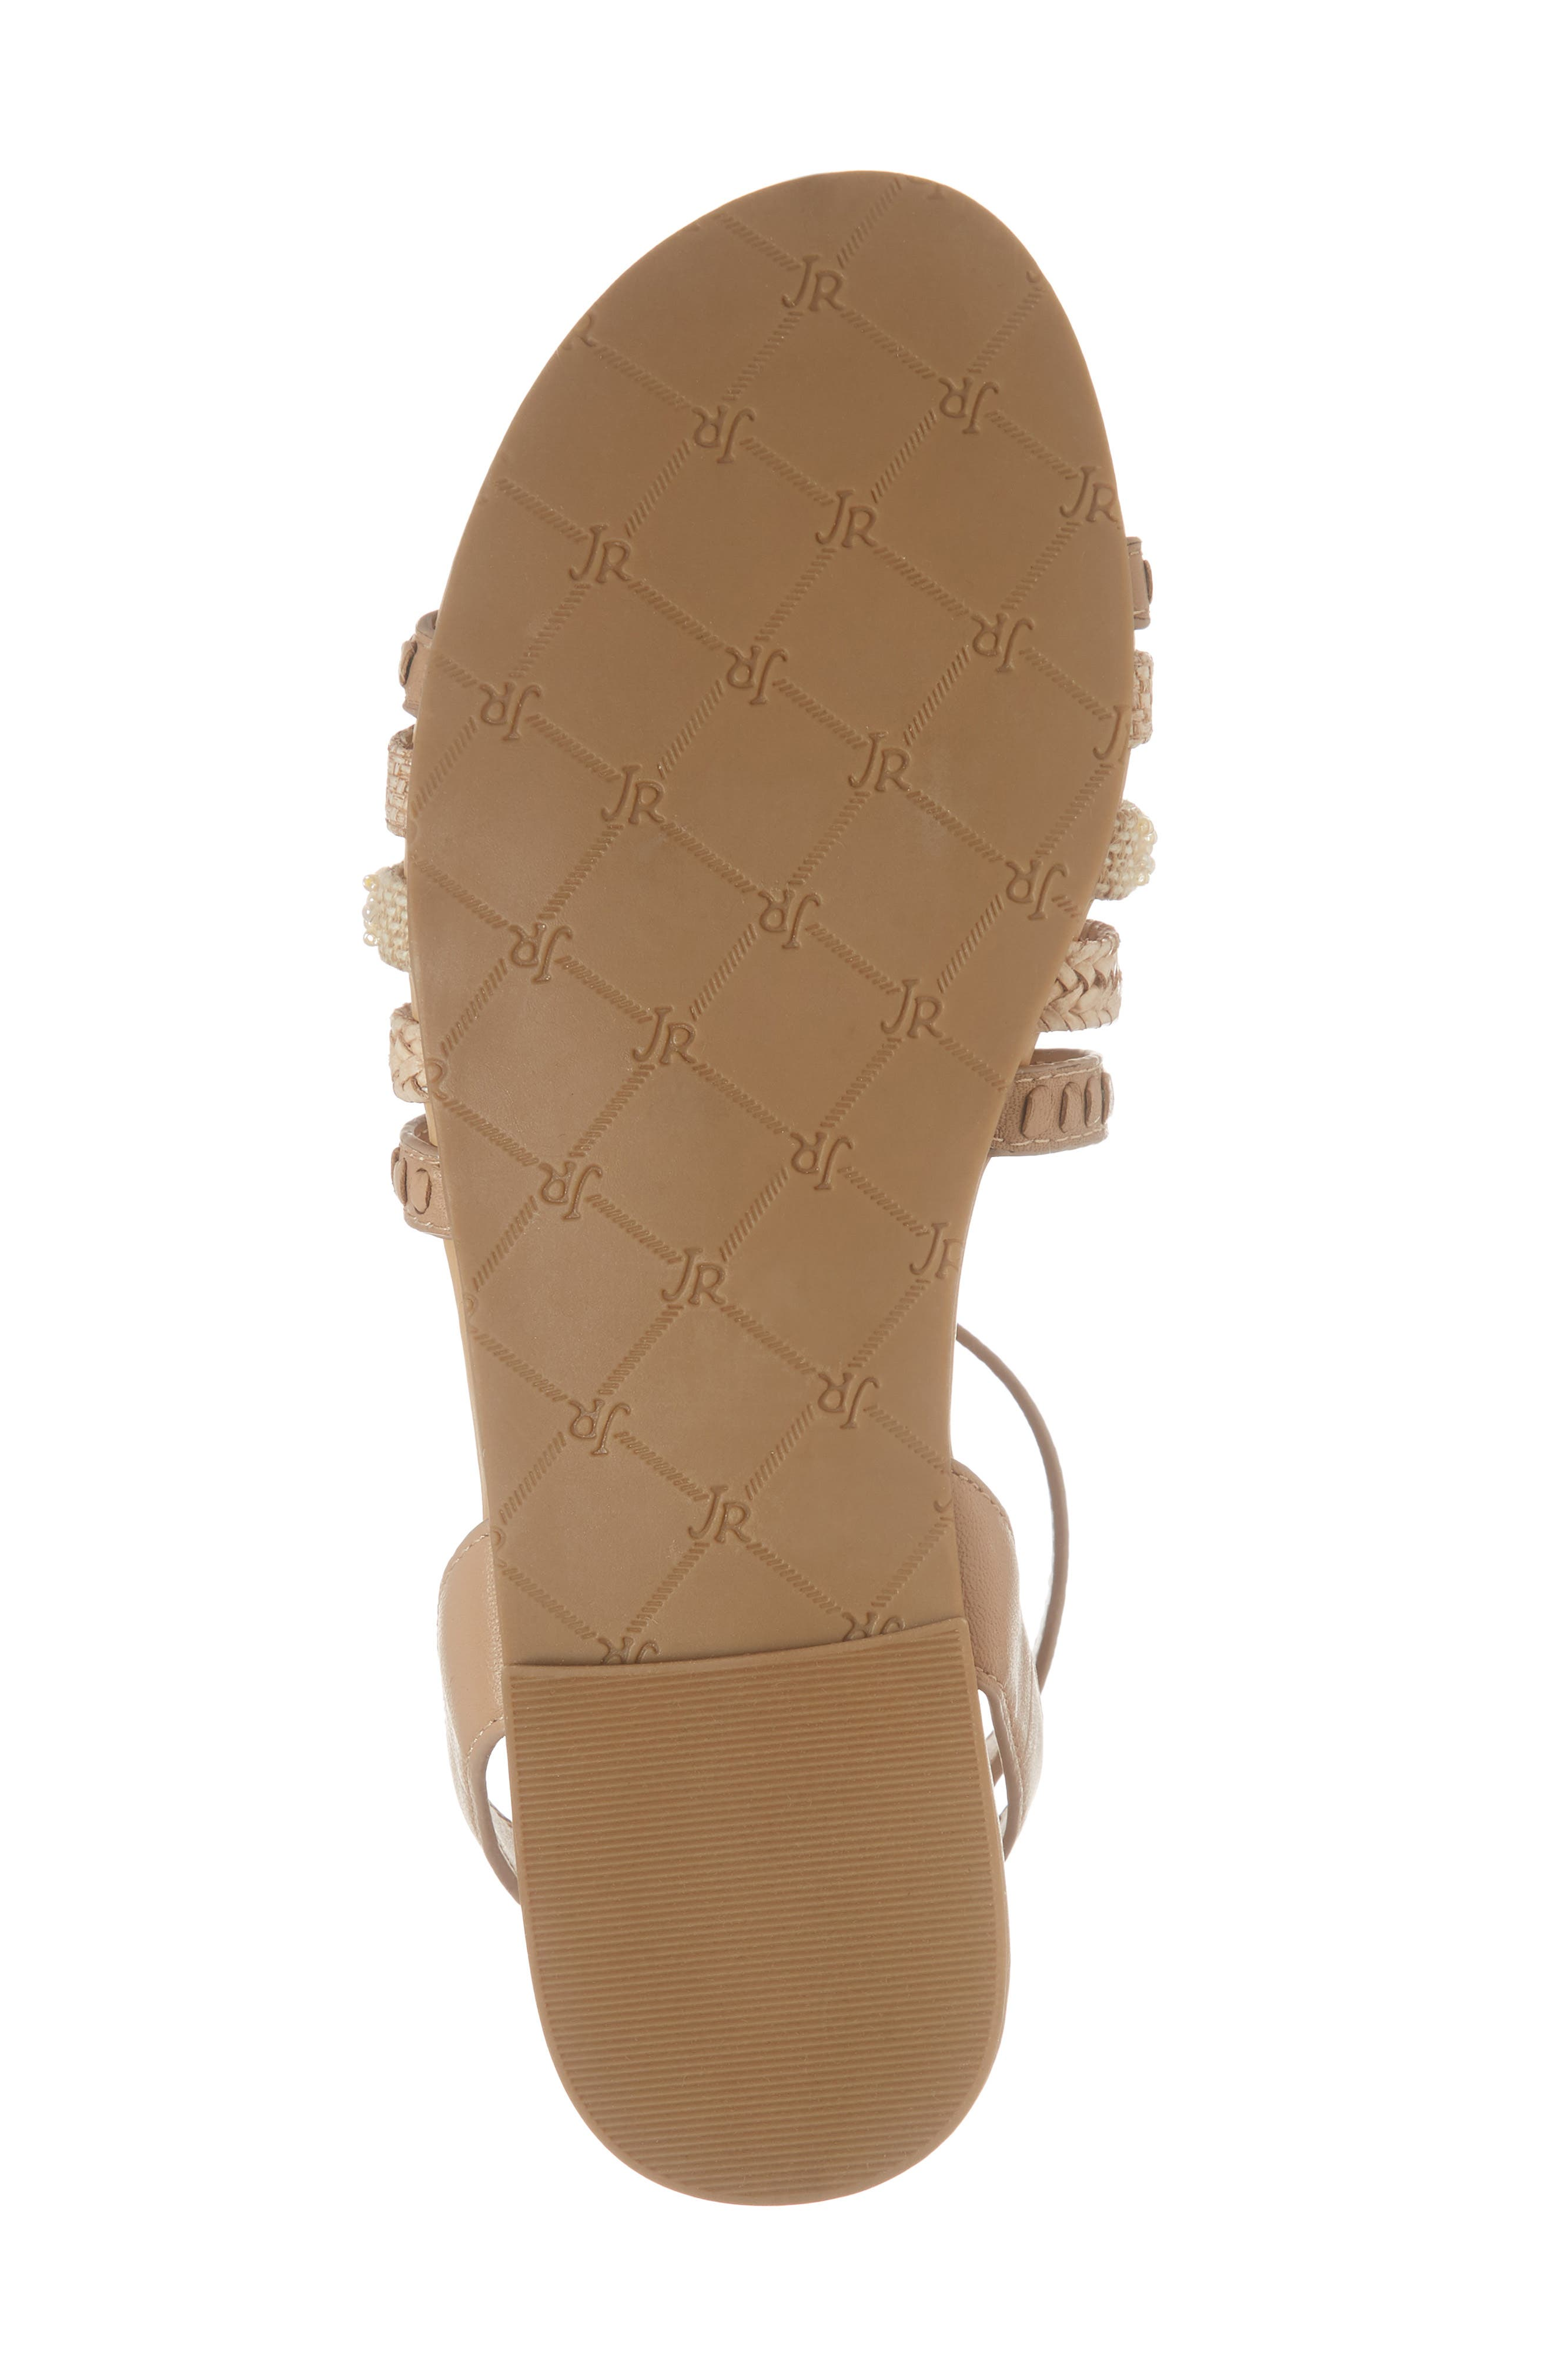 Hannah Braided Embellished Sandal,                             Alternate thumbnail 6, color,                             BUFF LEATHER